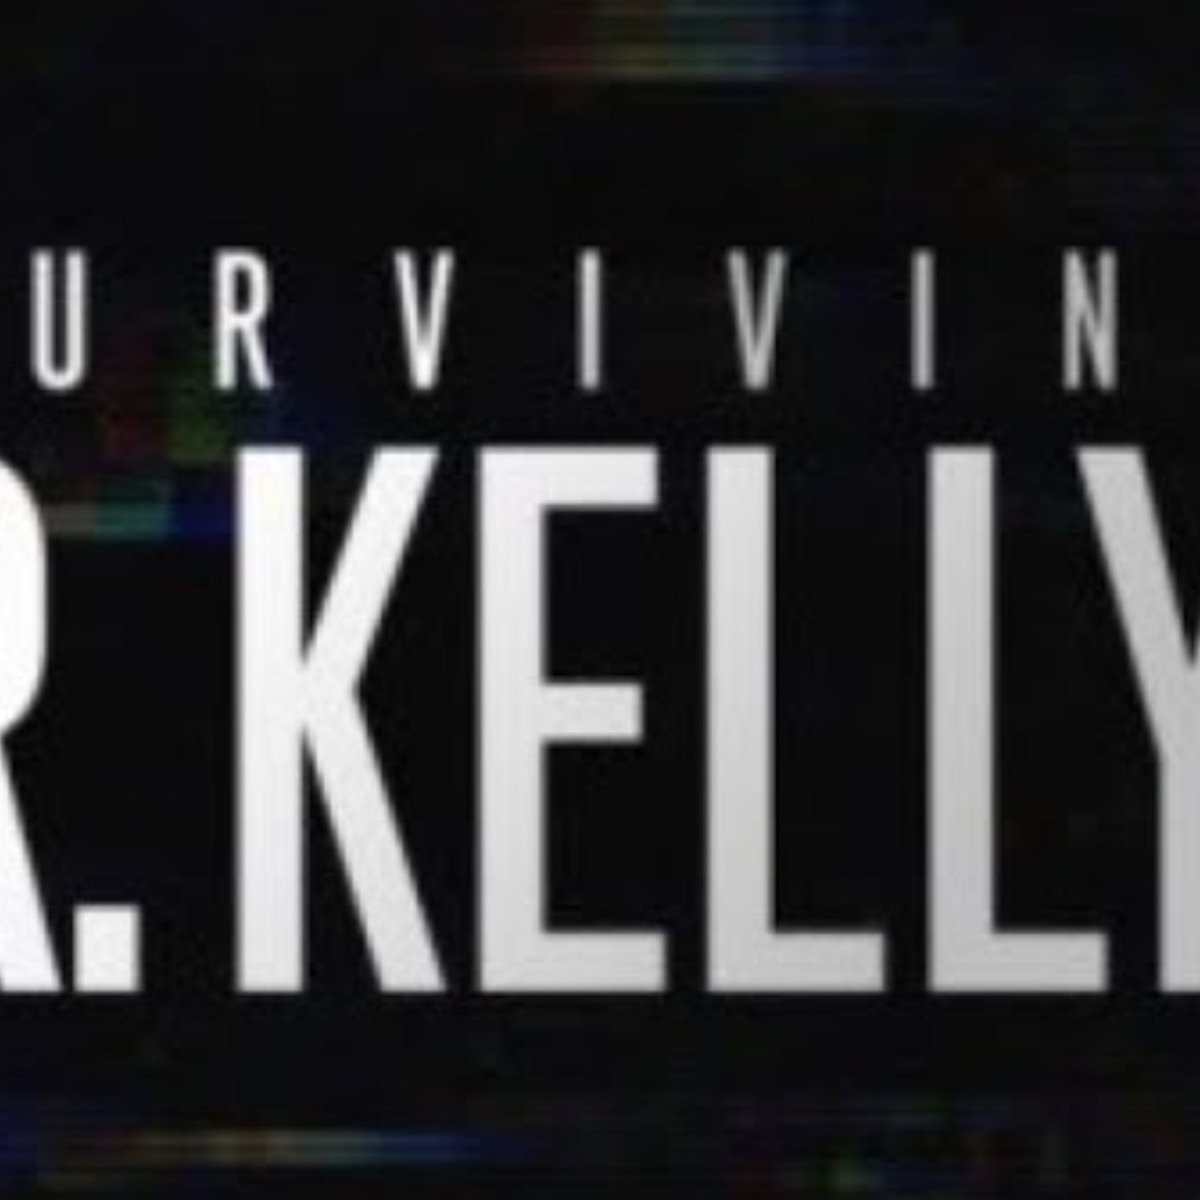 Sex Tape Scandal:  As journalists uncover a trail of lawsuits and confidential settlements concerning underage girls, an underground sex tapes emerges that puts R. Kelly in a compromising position. #survivingRKelley  @lifetimetv